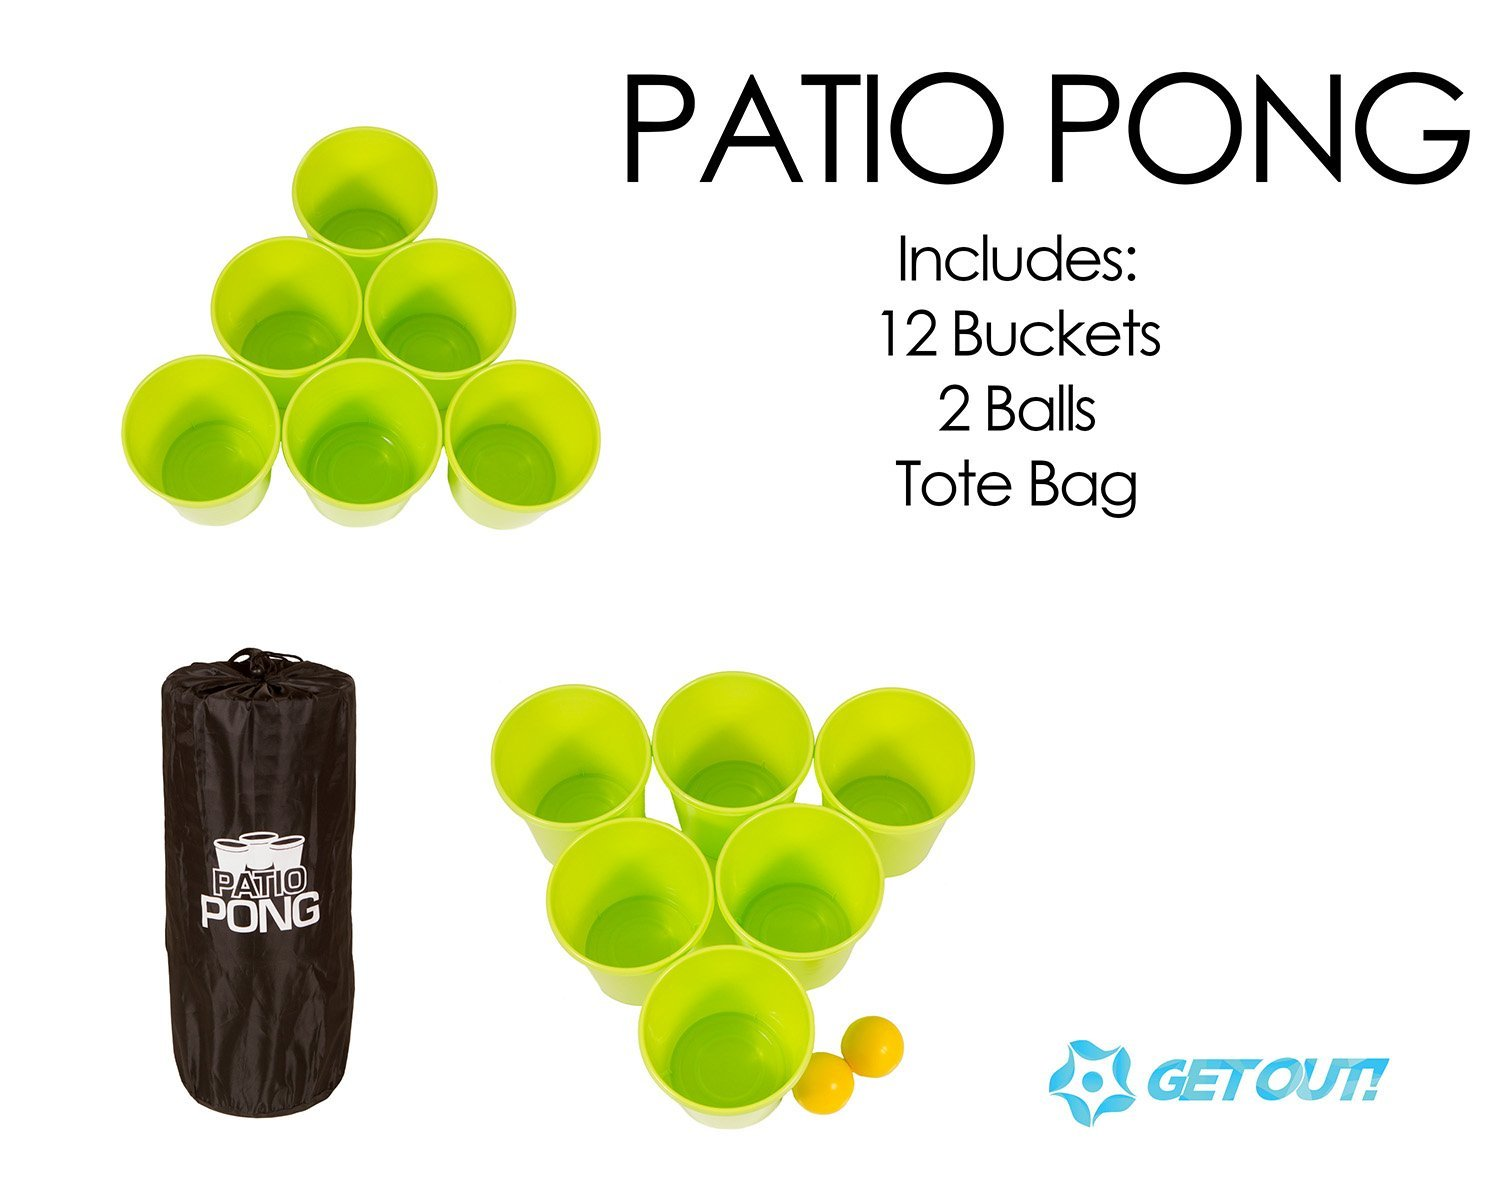 Get Out Giant Yard Beer Pong Set for Outdoor Fun 12 Buckets 2 Balls Patio Pong 1 Drawstring Carrying Bag